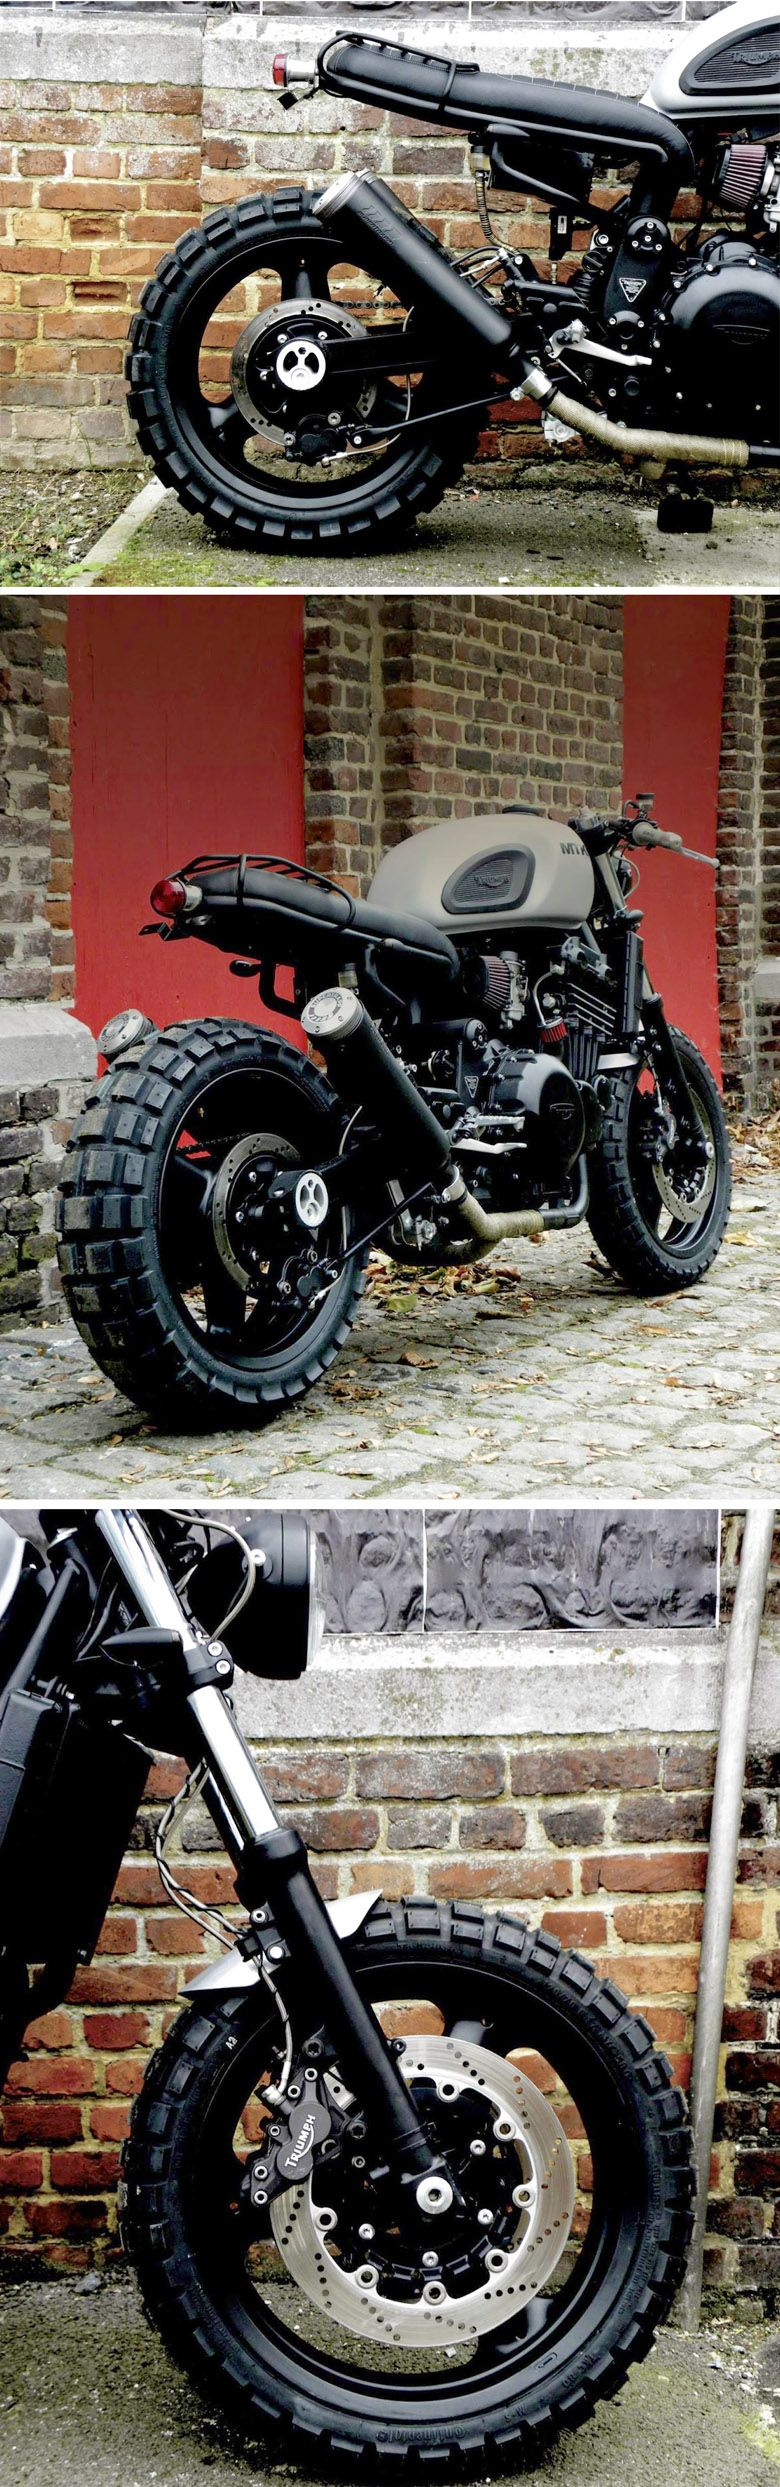 Classified moto kt600 the garage cafe - Mk20 Triumph By Motokouture Bespoke Motorcycles Http Rocket Garage